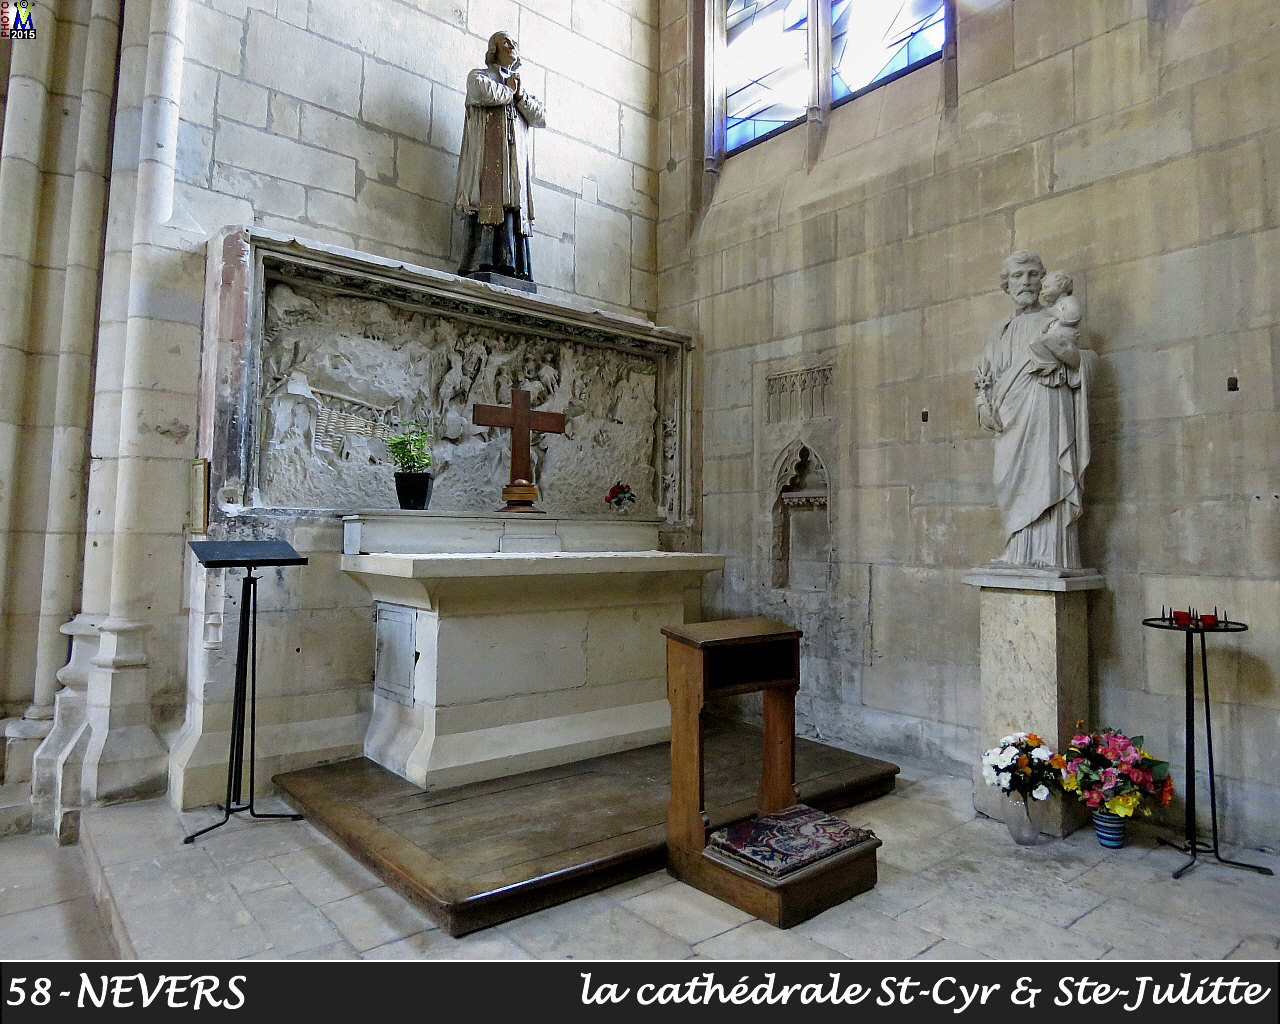 58NEVERS-cathedrale_228.jpg